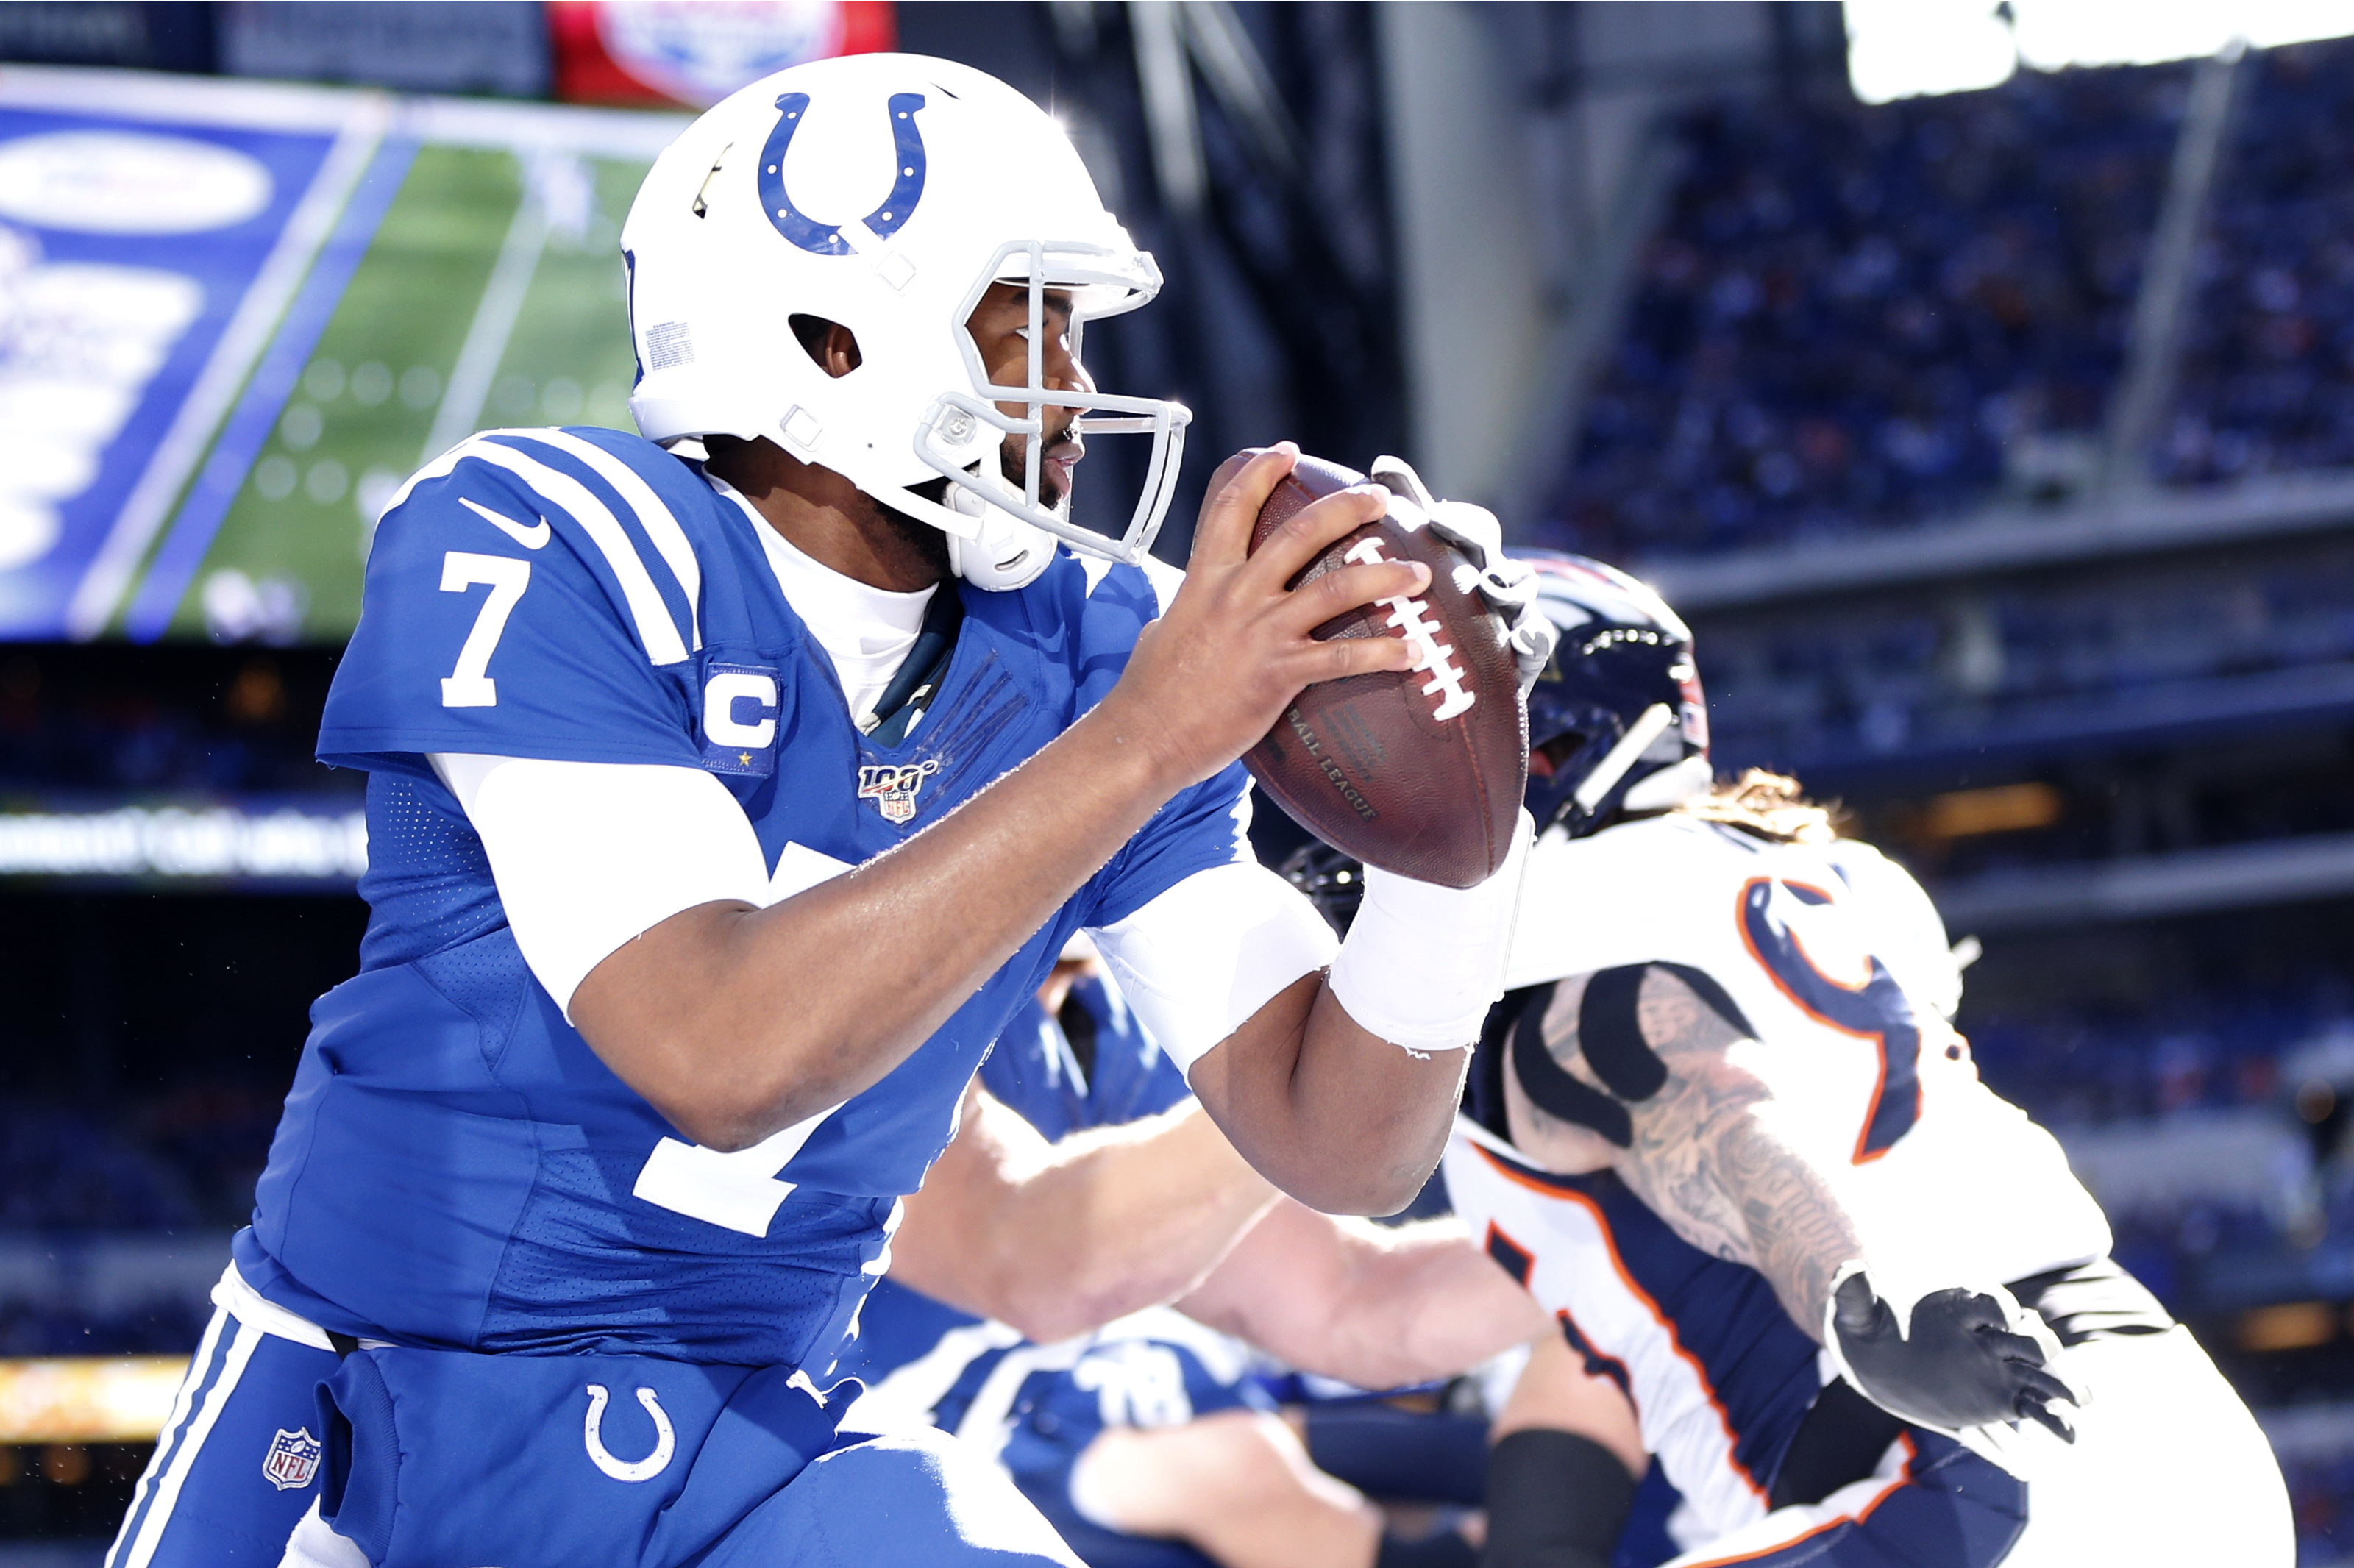 Colts steelers betting line fixed odds betting closed table